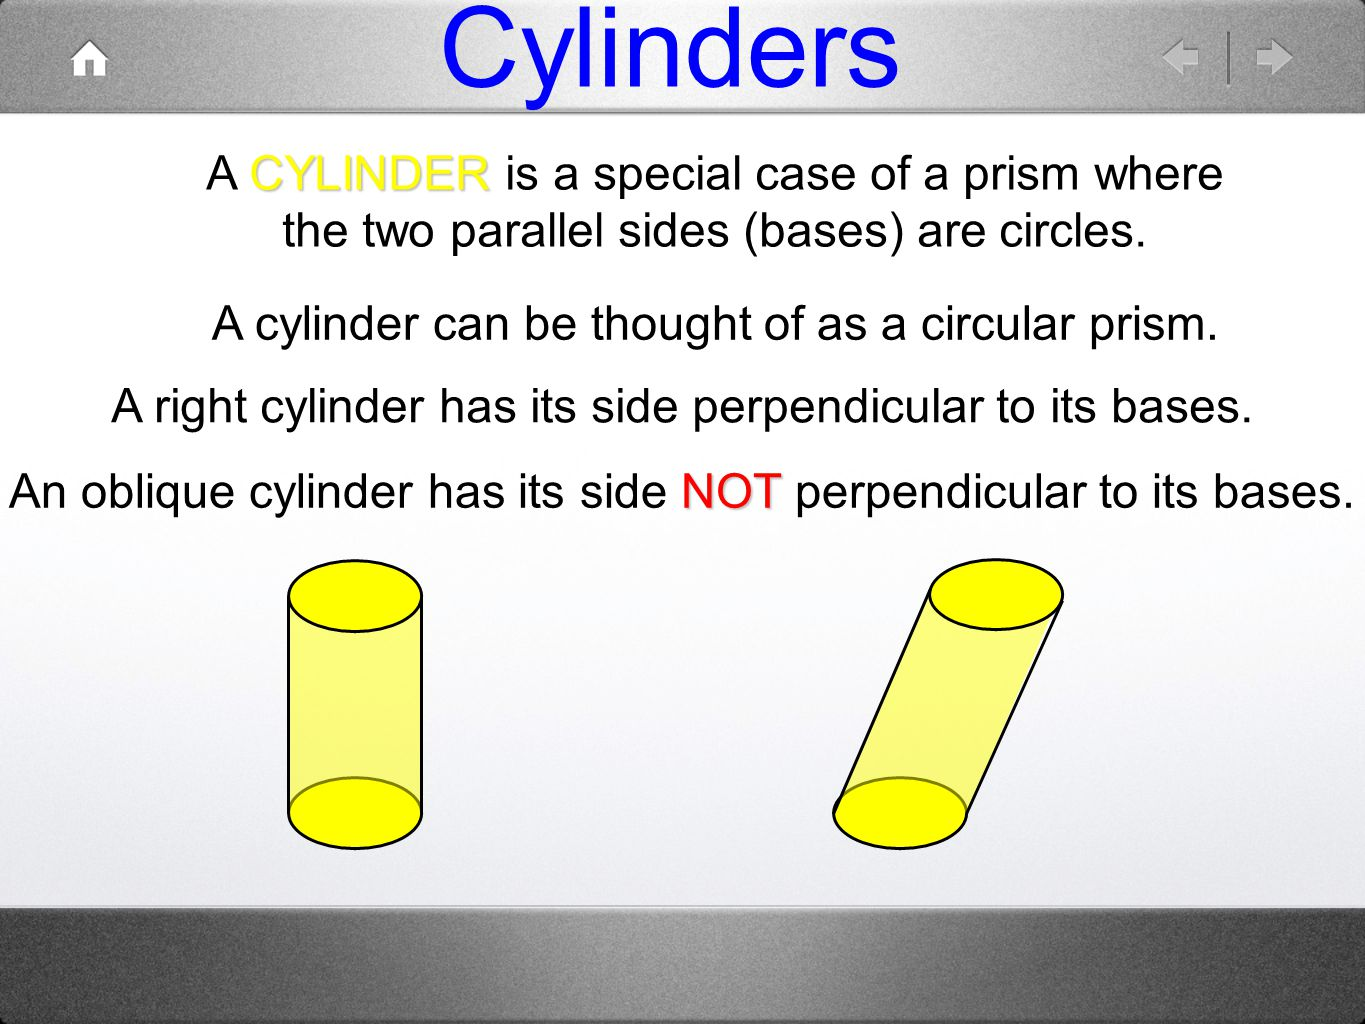 Cylinders A CYLINDER is a special case of a prism where the two parallel sides (bases) are circles.